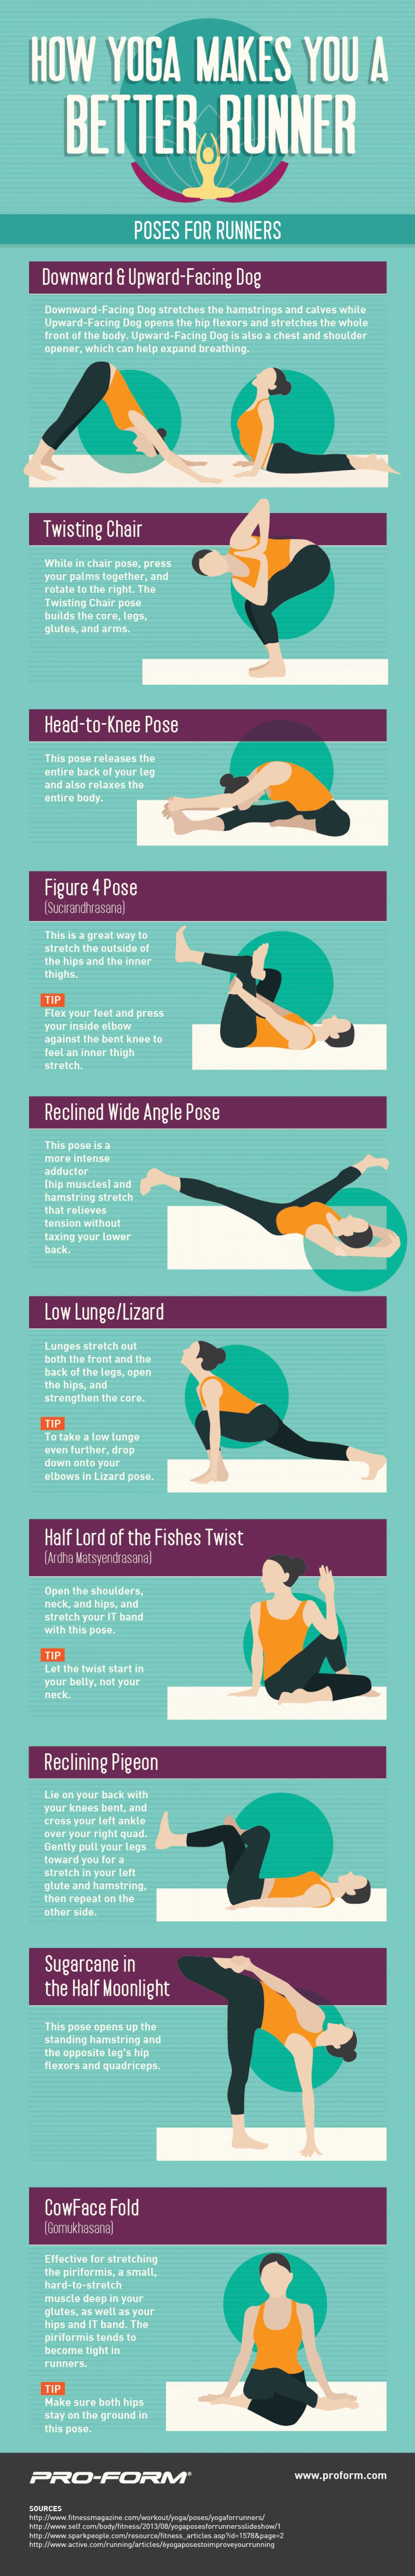 How Yoga Makes You A Better Runner